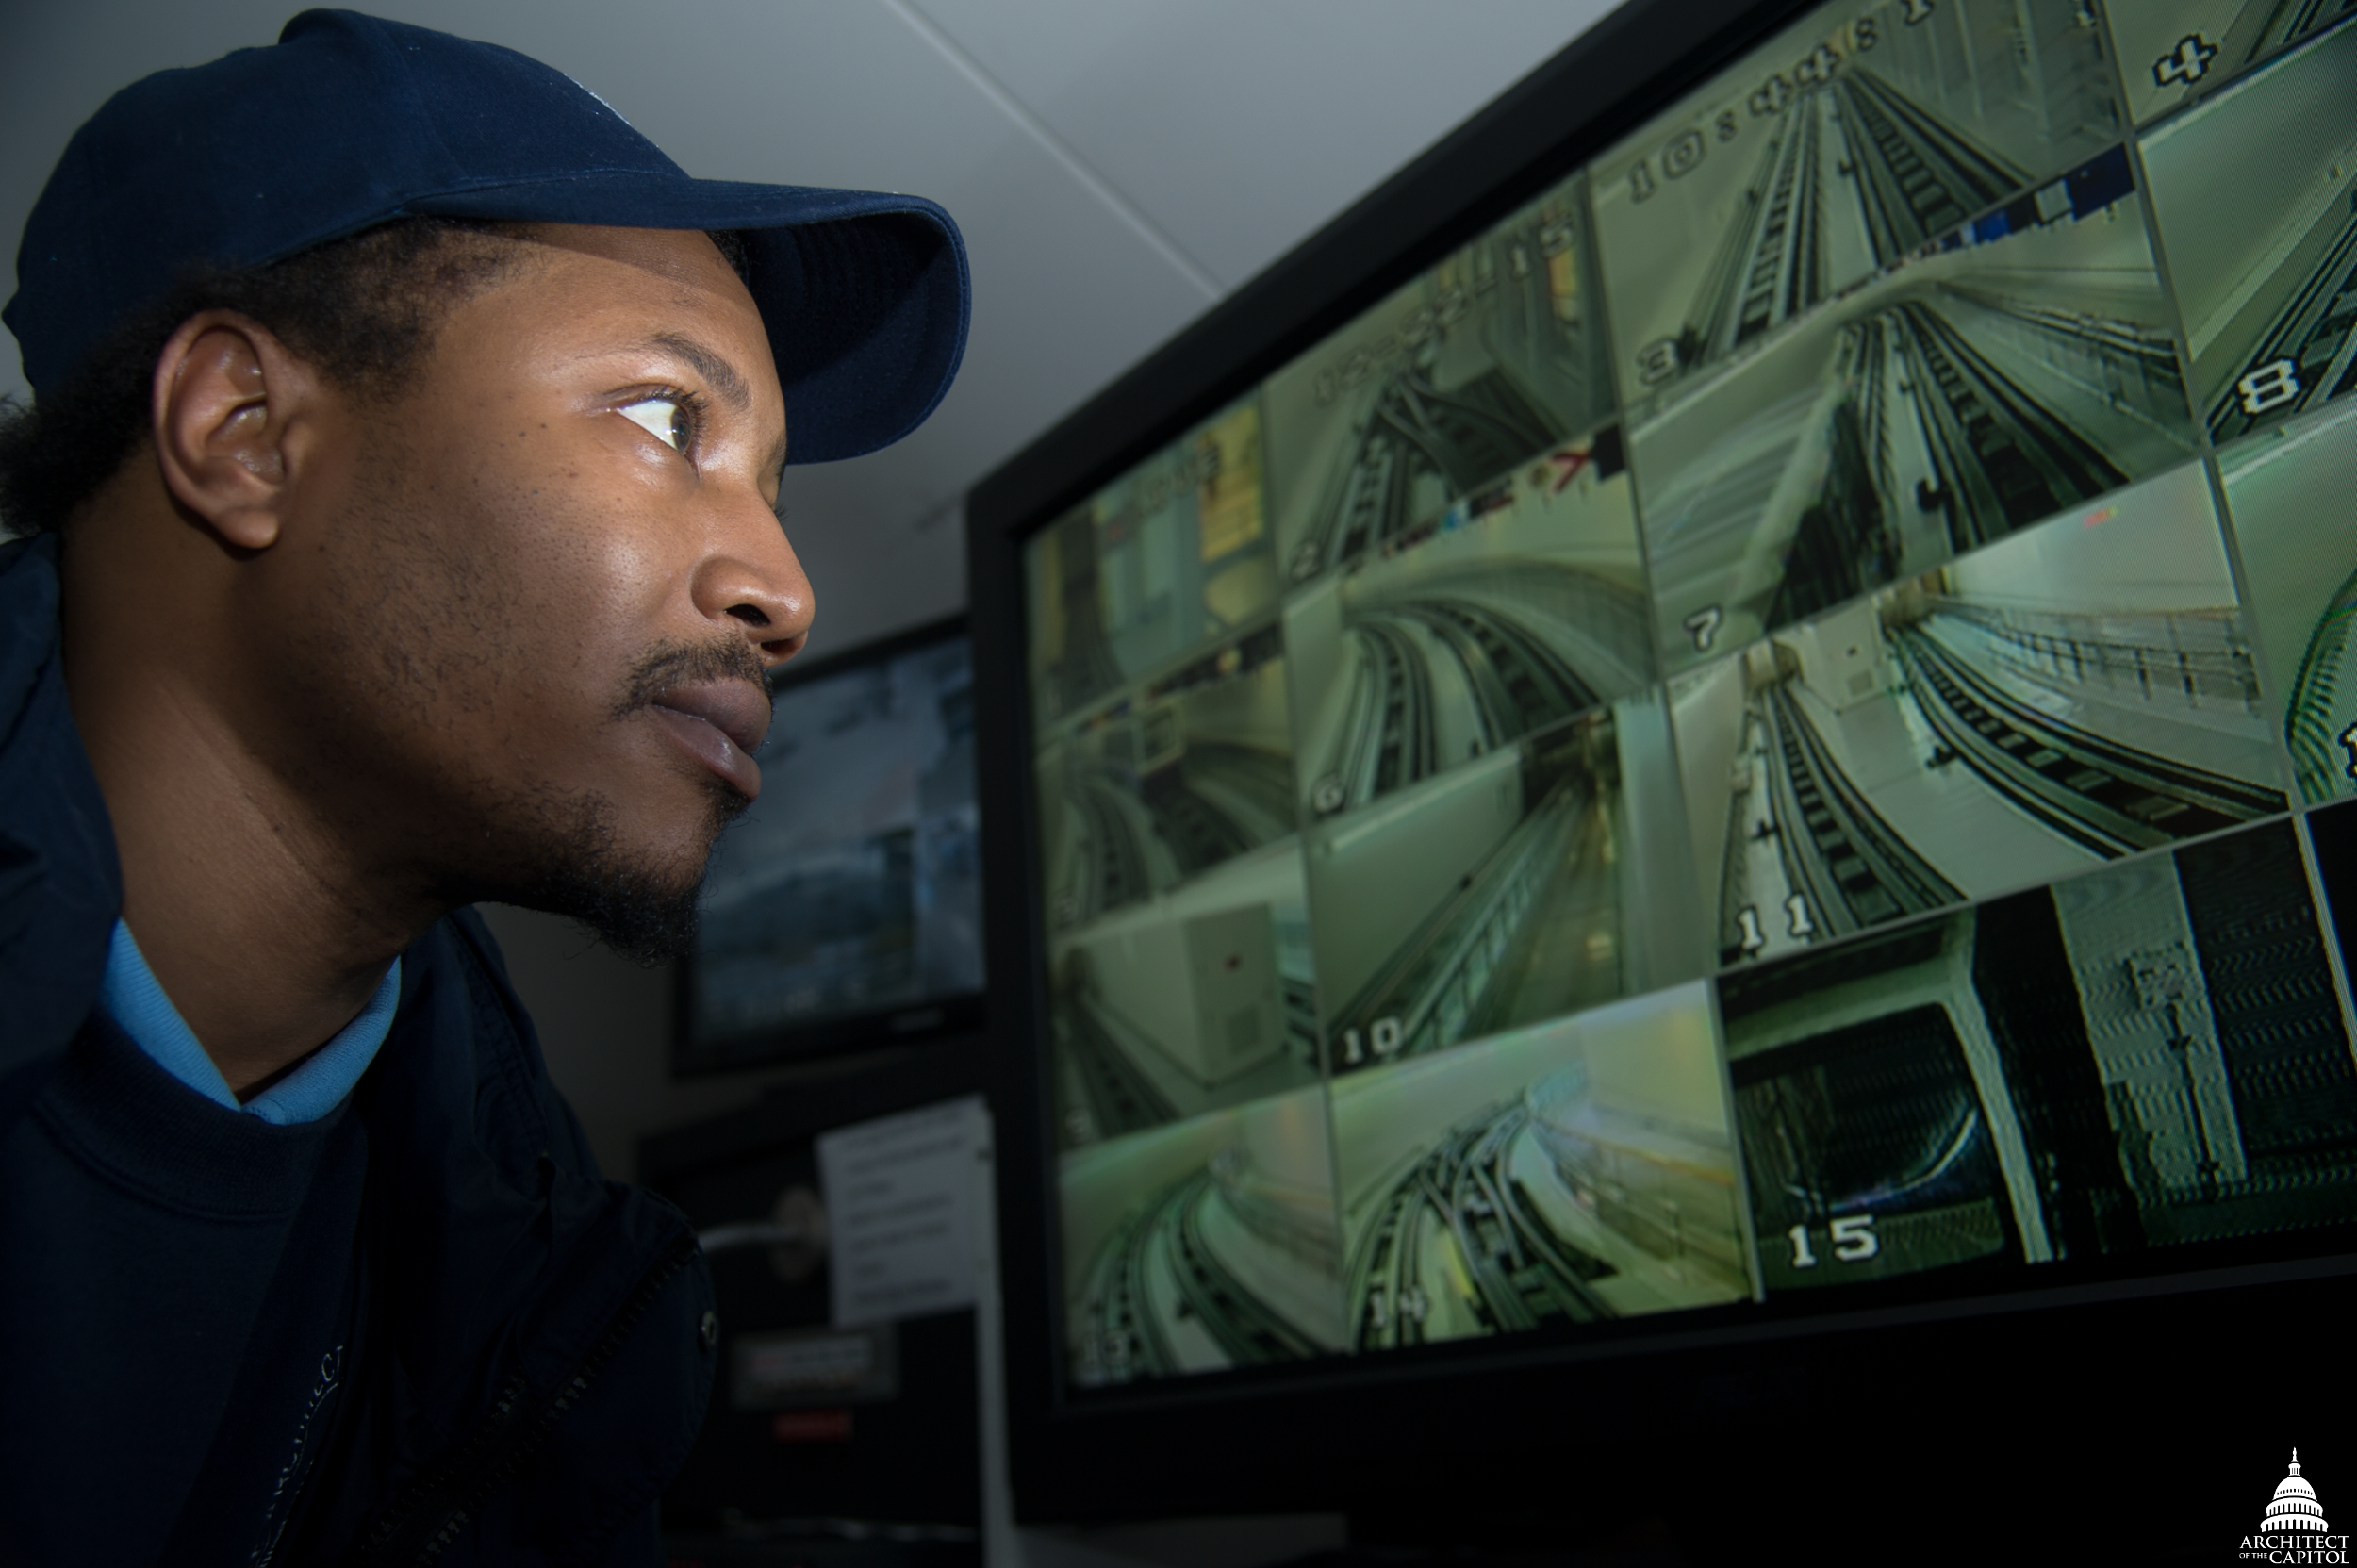 Erick Gage views the automated subway system to the Hart and Dirksen Buildings from a nearby control room. Staff continuously monitor the system so they can prevent many problems and respond quickly whenever they occur.